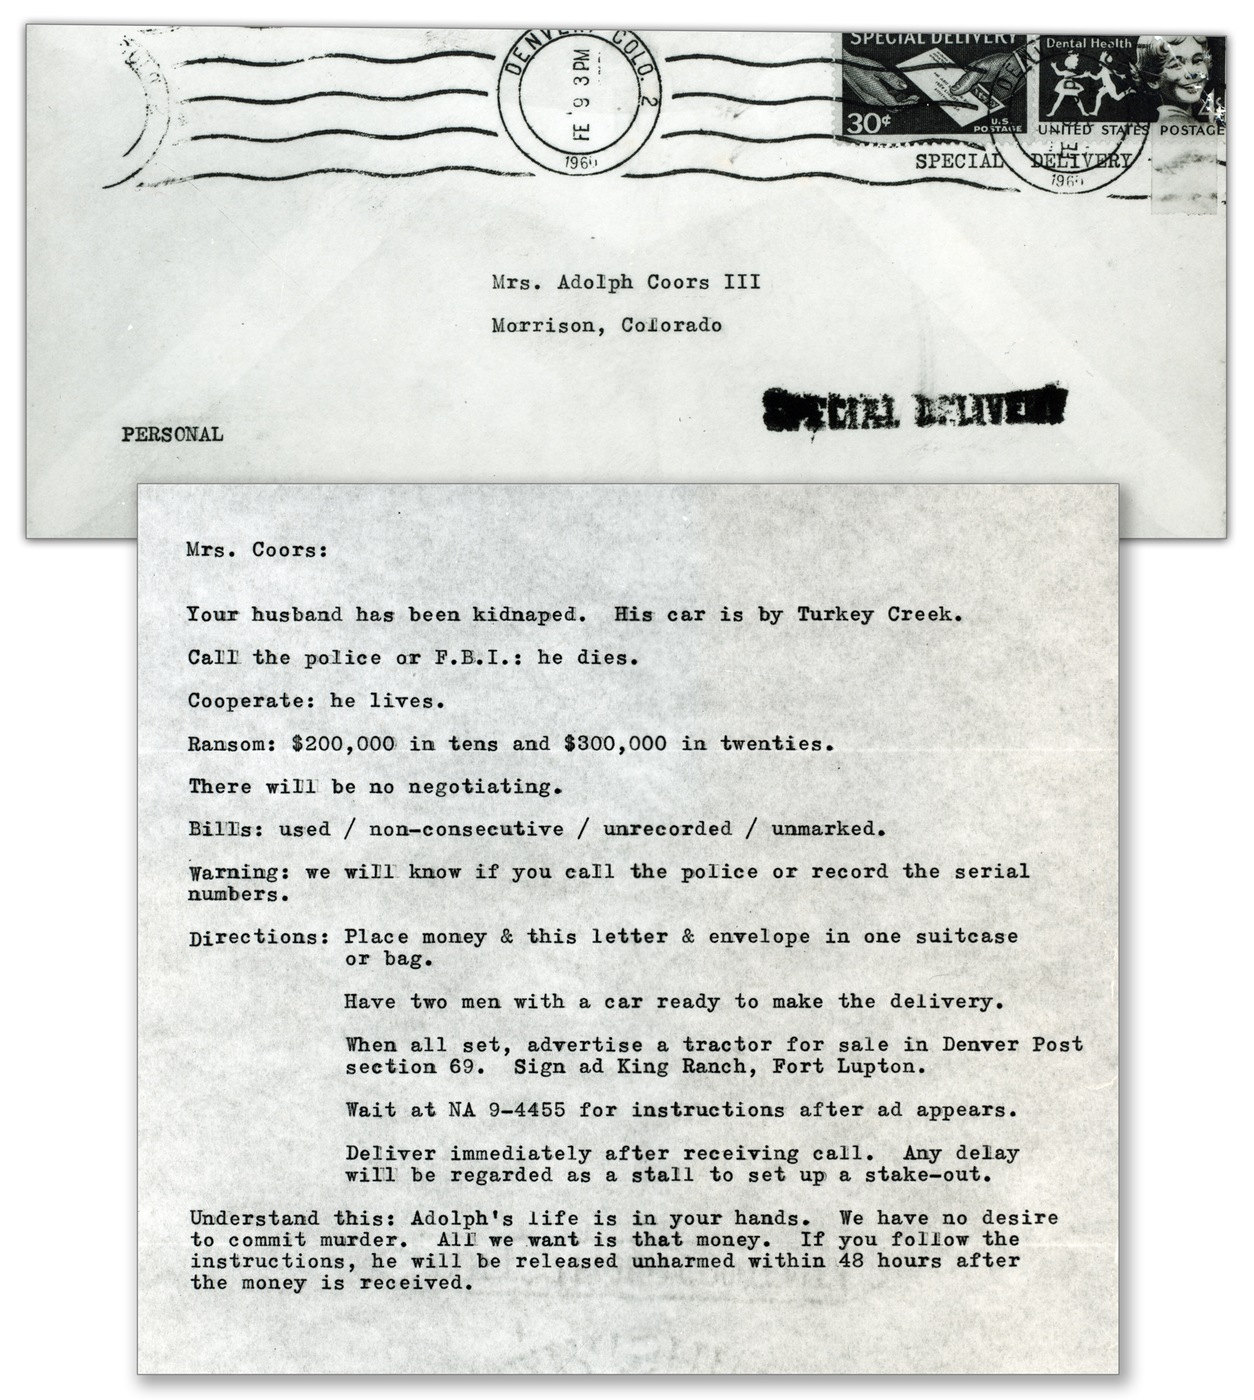 Photo of a typewritten ransom note delivered to Mary Coors, whose husband was kidnapped and murdered in 1960.